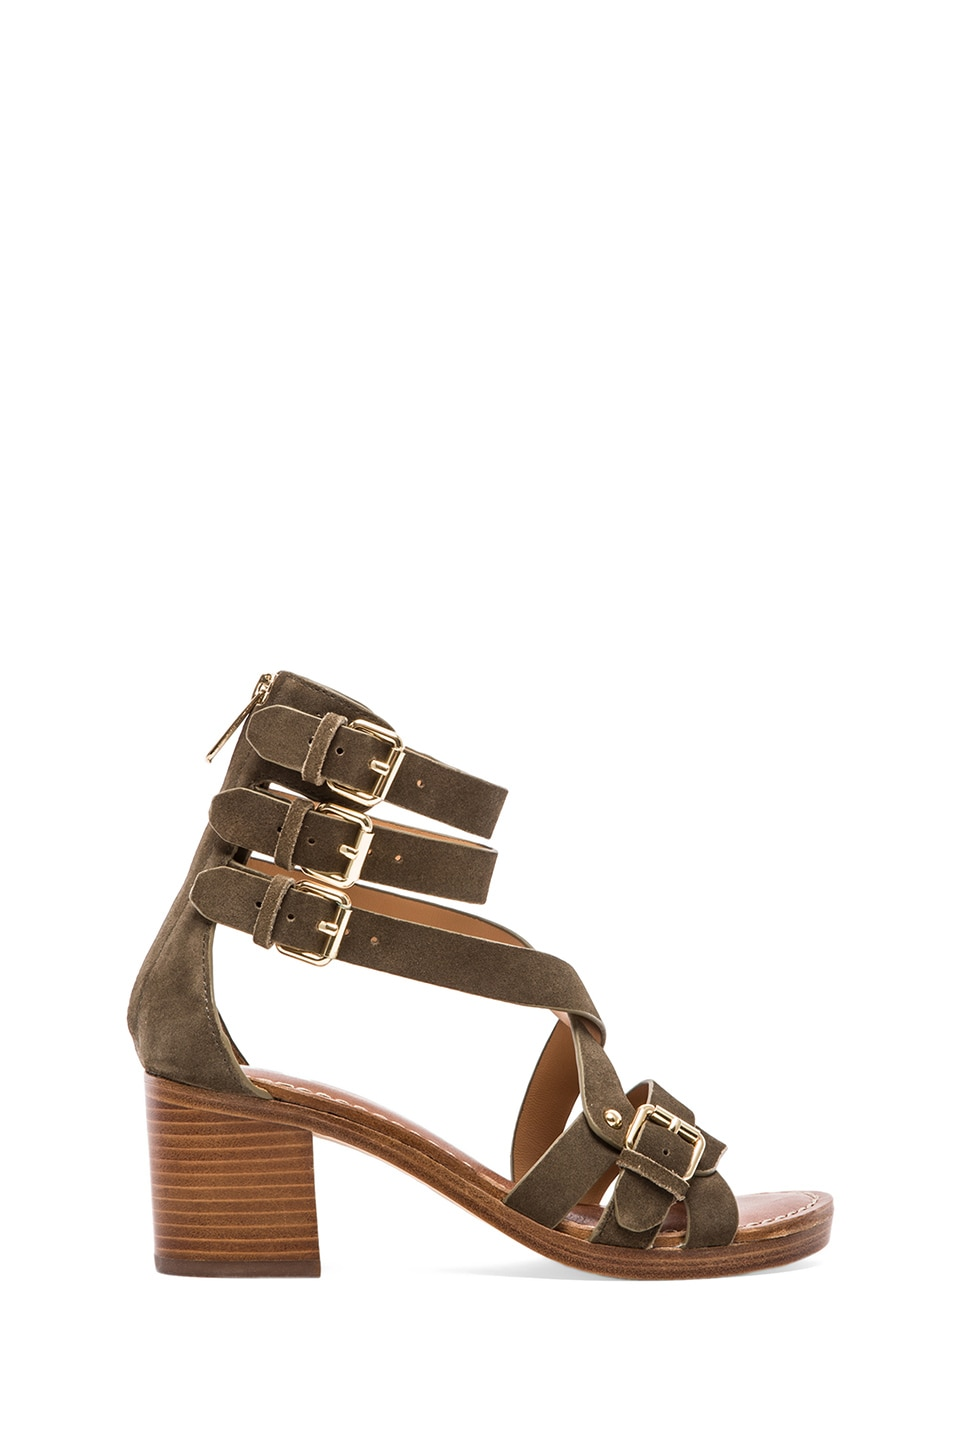 b2663dafb Belle by Sigerson Morrison Abra Sandals in Silice